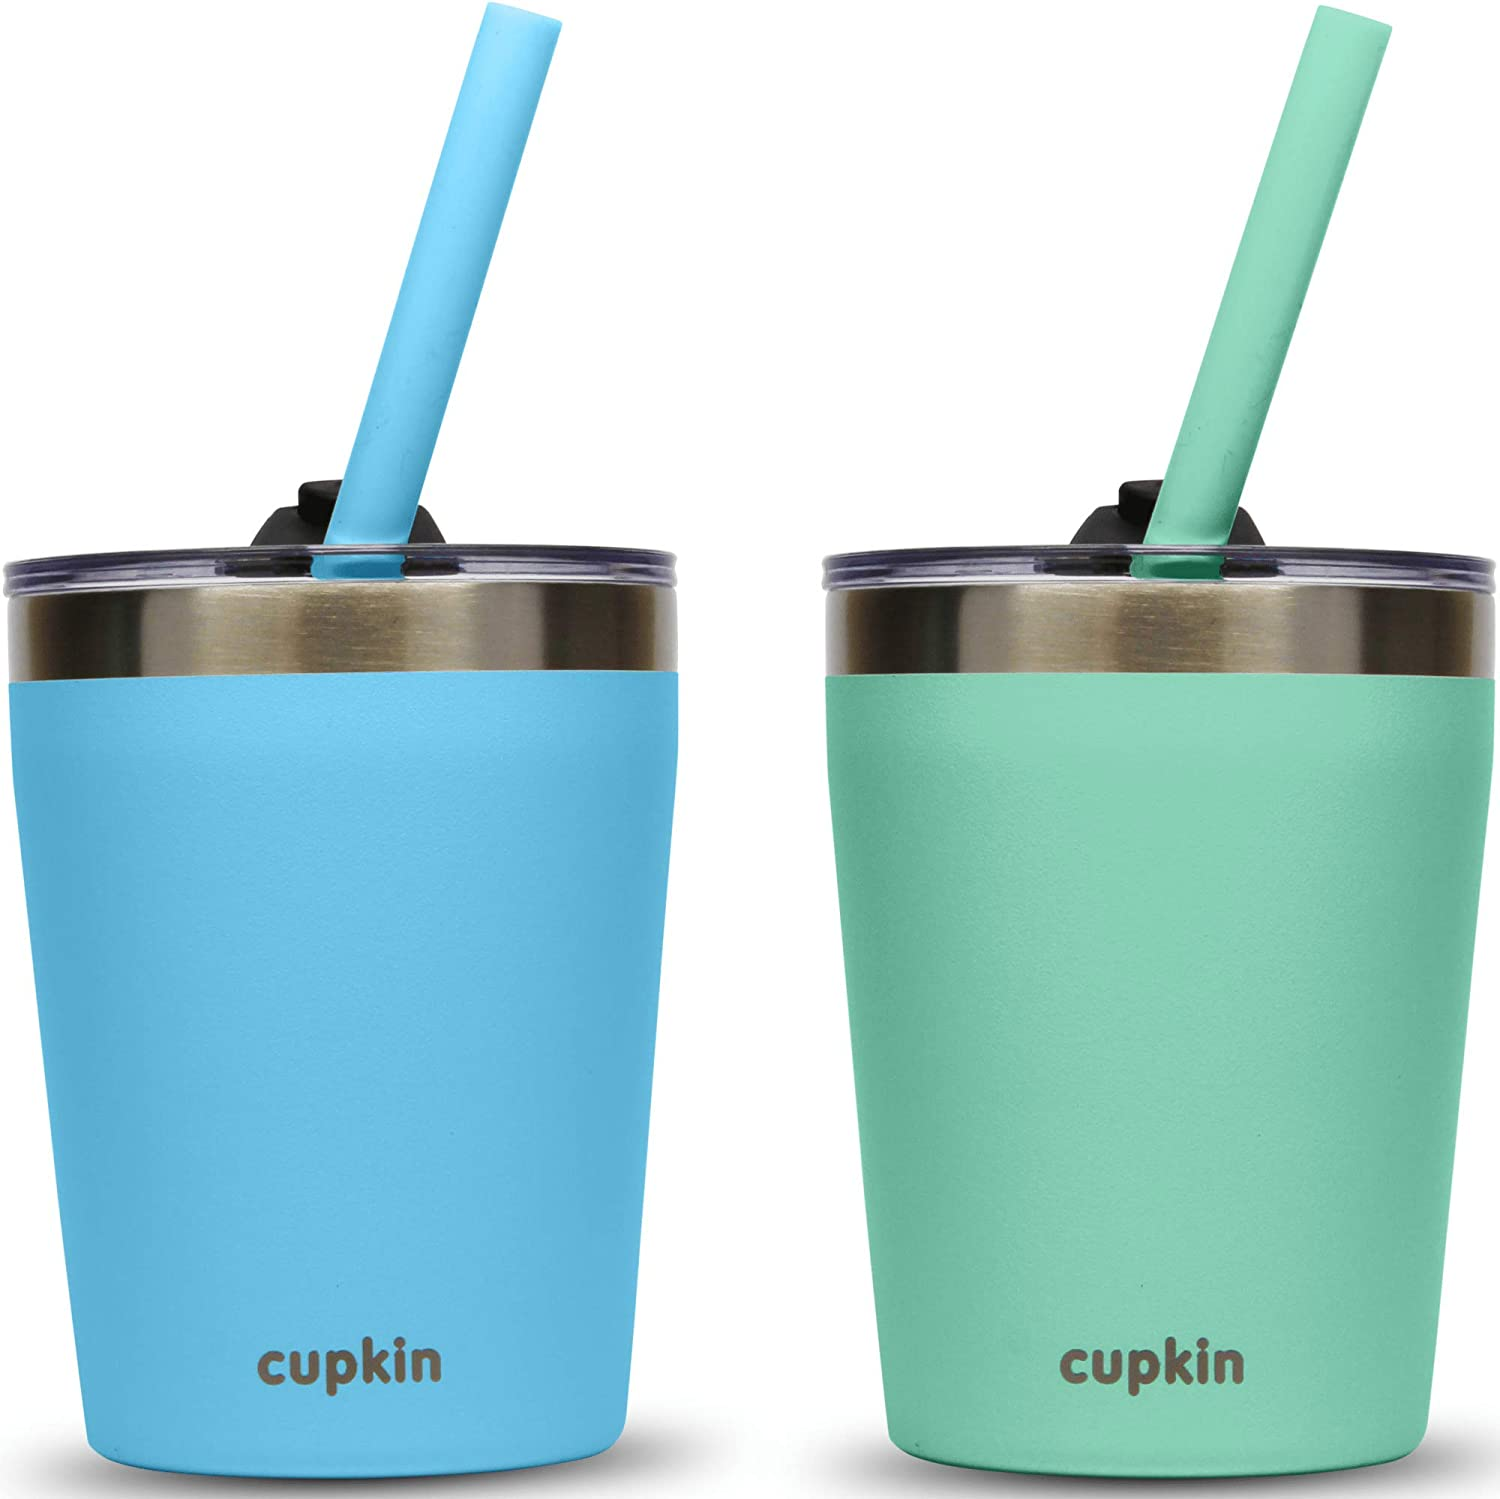 Cupkin Stackable Stainless Steel Kids Tu Fixed price for sale Inventory cleanup selling sale Training Cups Smoothie